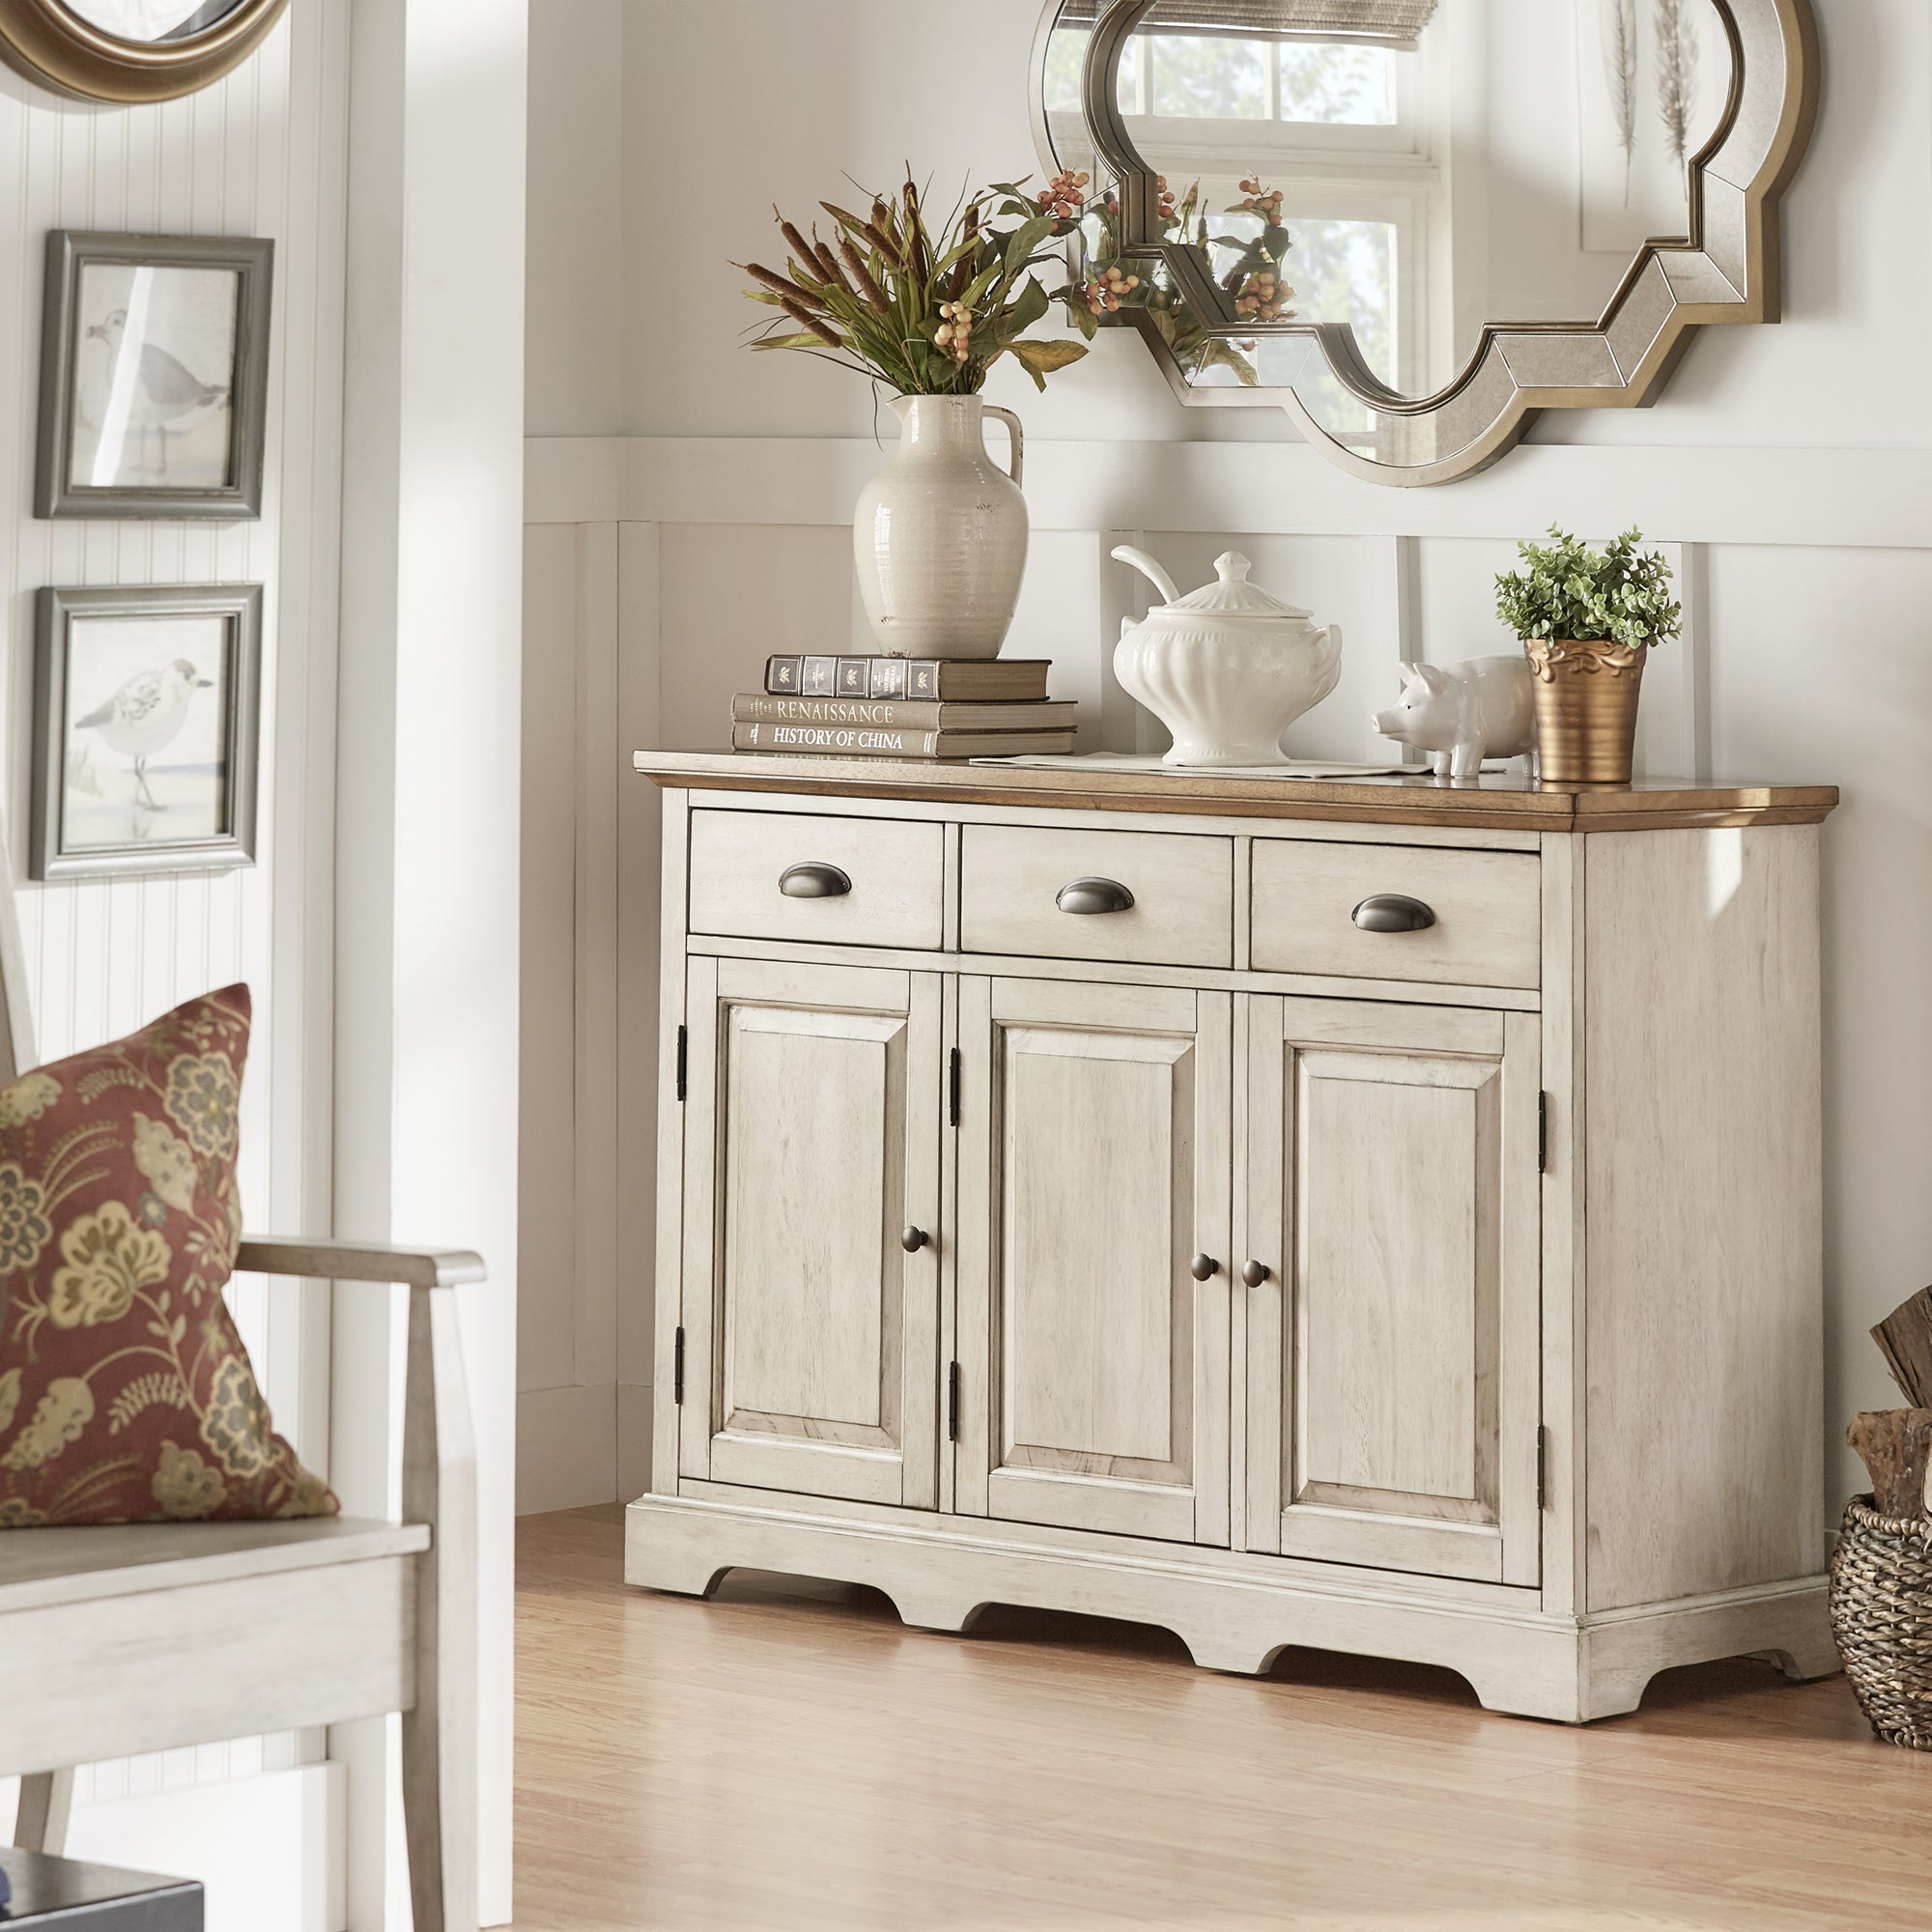 Buy Buffets, Sideboards U0026 China Cabinets Online At Overstock.com | Our Best Dining  Room U0026 Bar Furniture Deals